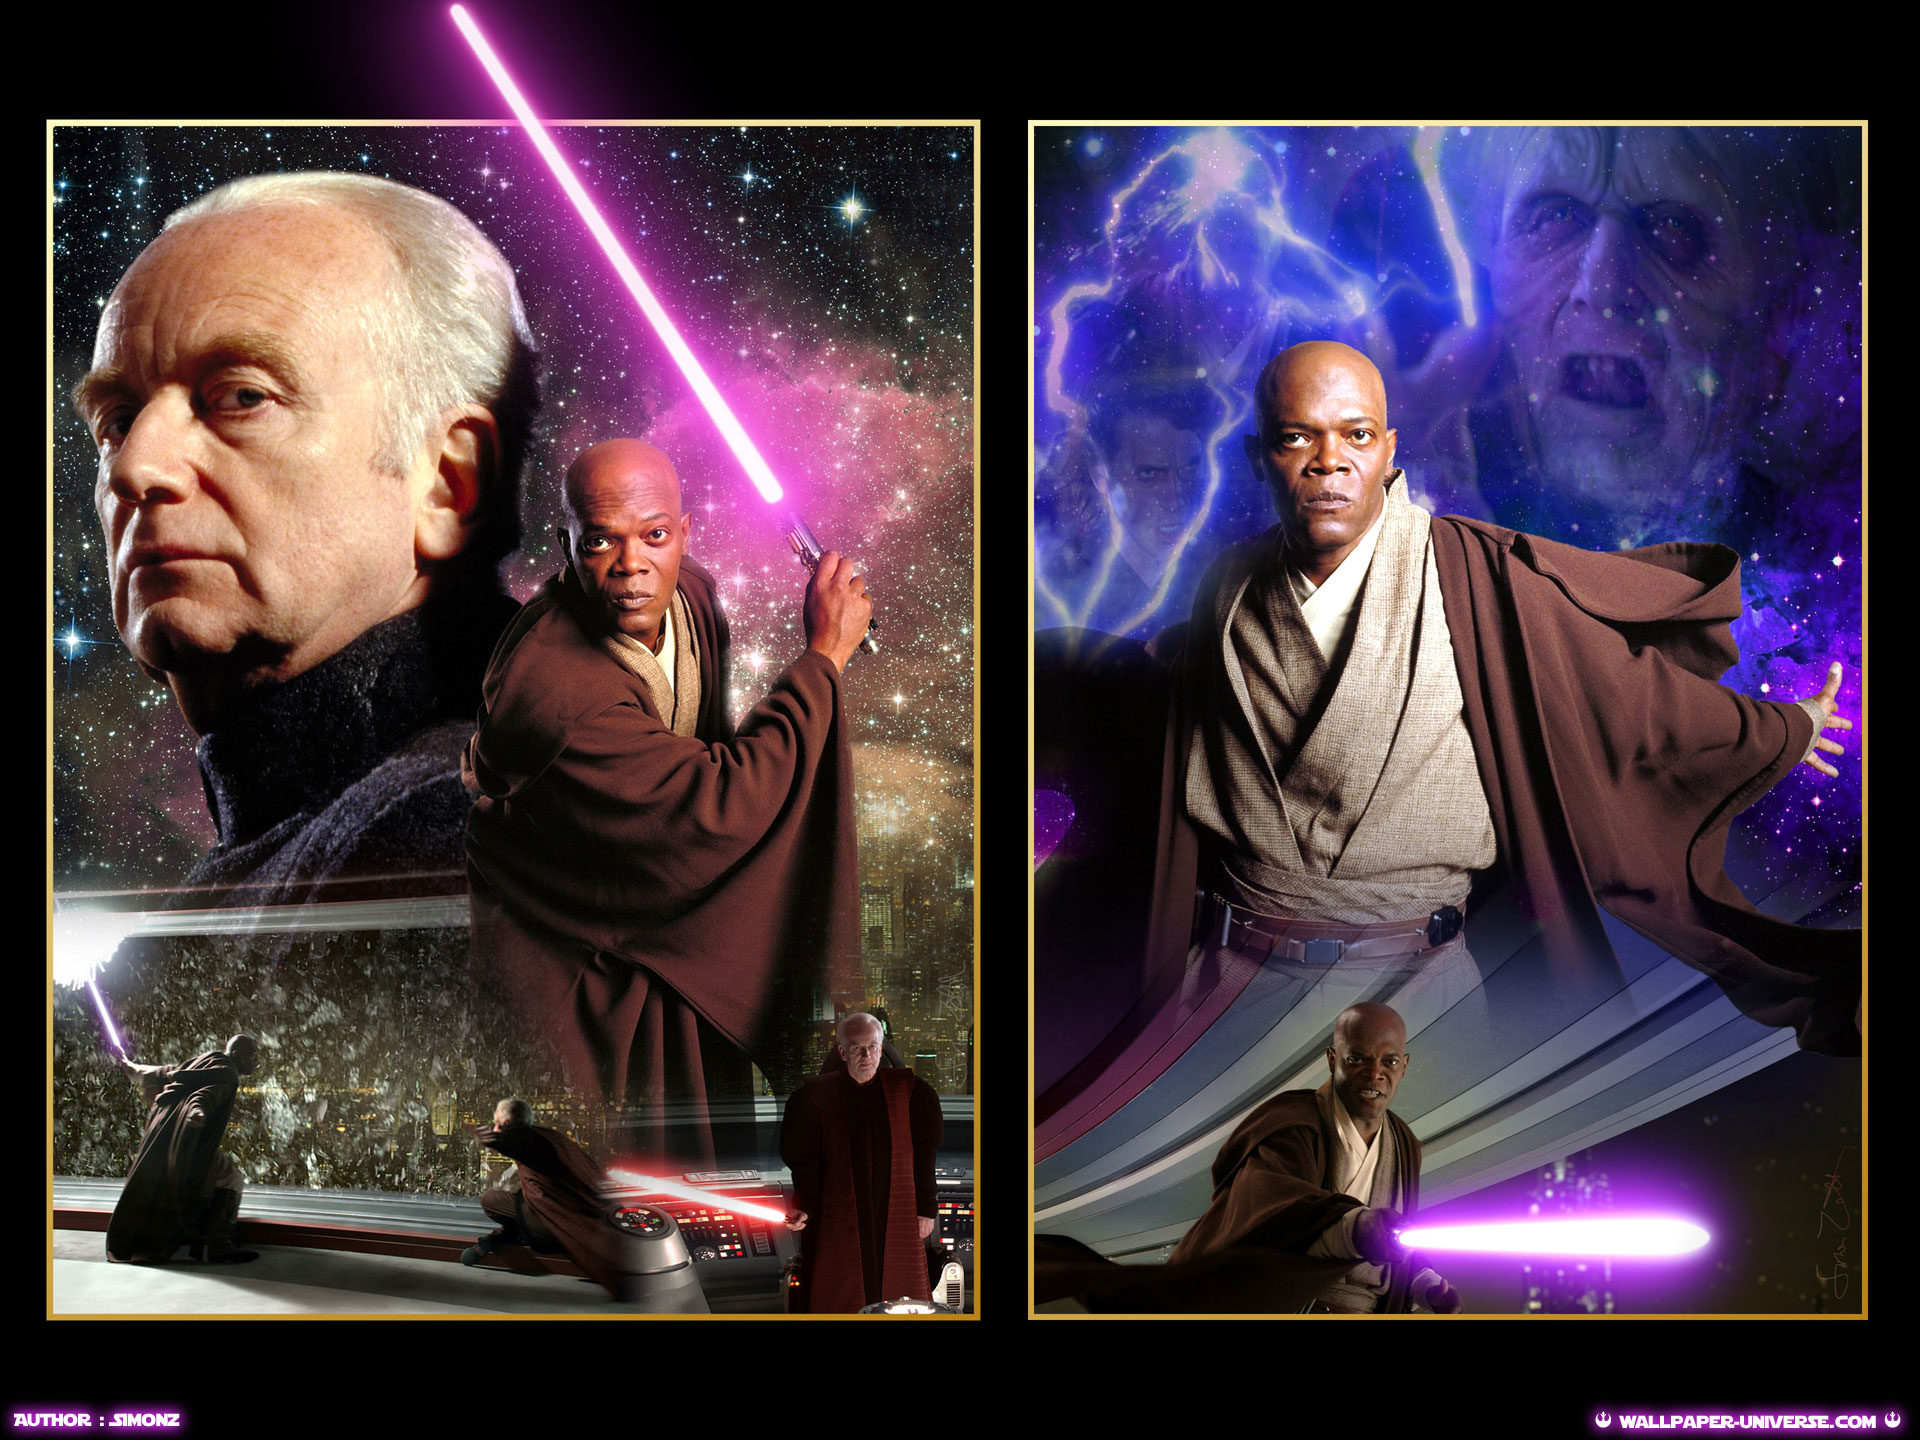 Star Wars Revenge Of The Sith Images Rots Ep Iii Palpatine Vs